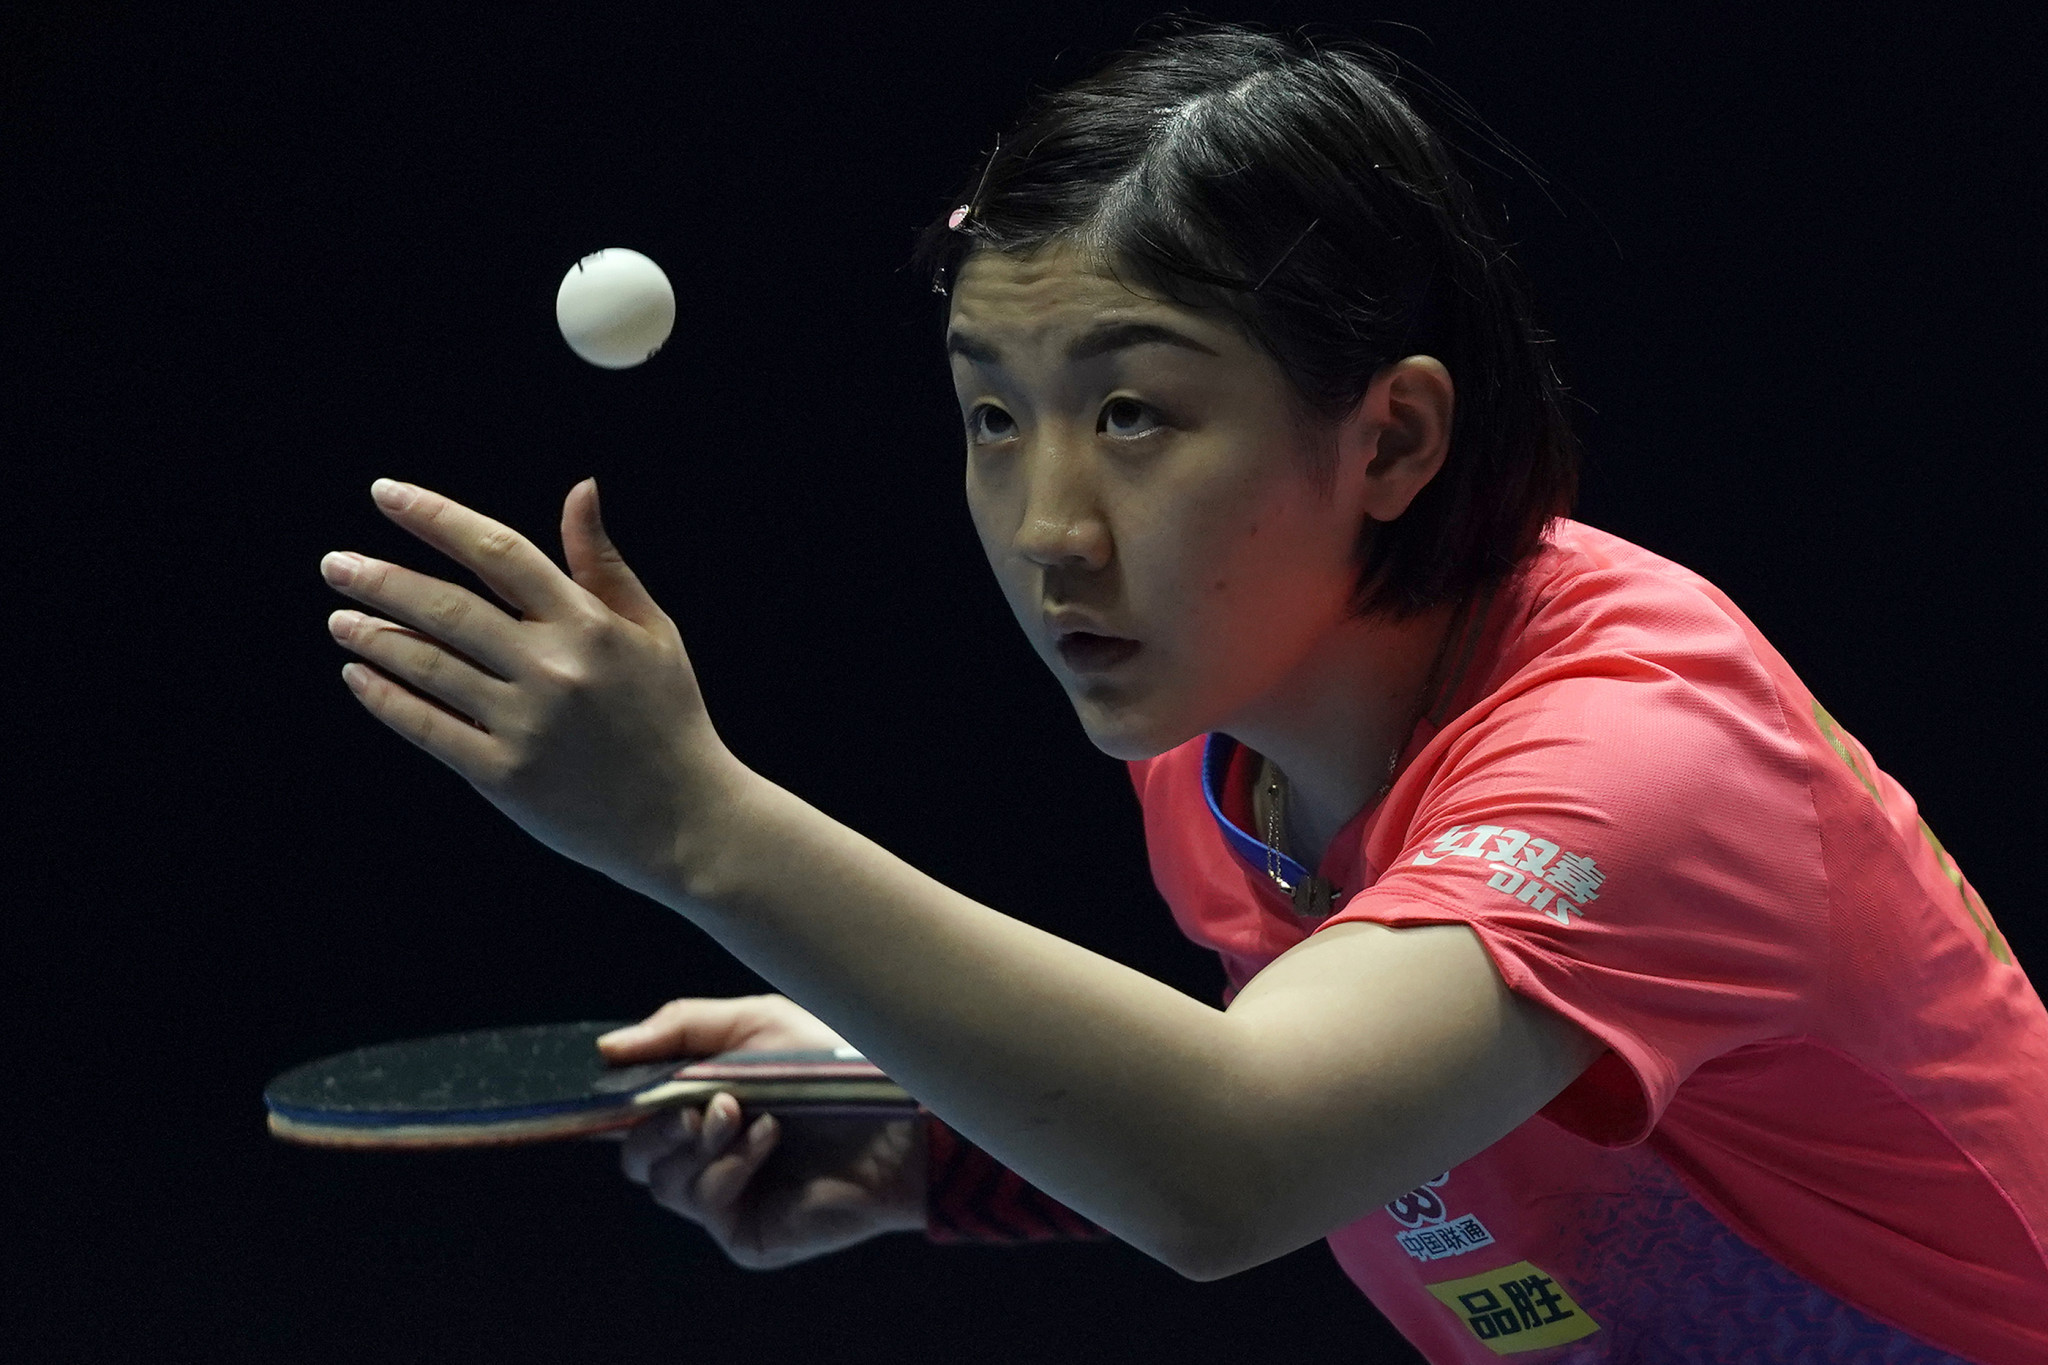 Chen Meng of China in action during the T2 Diamond in 2019 in Singapore ©Getty Images